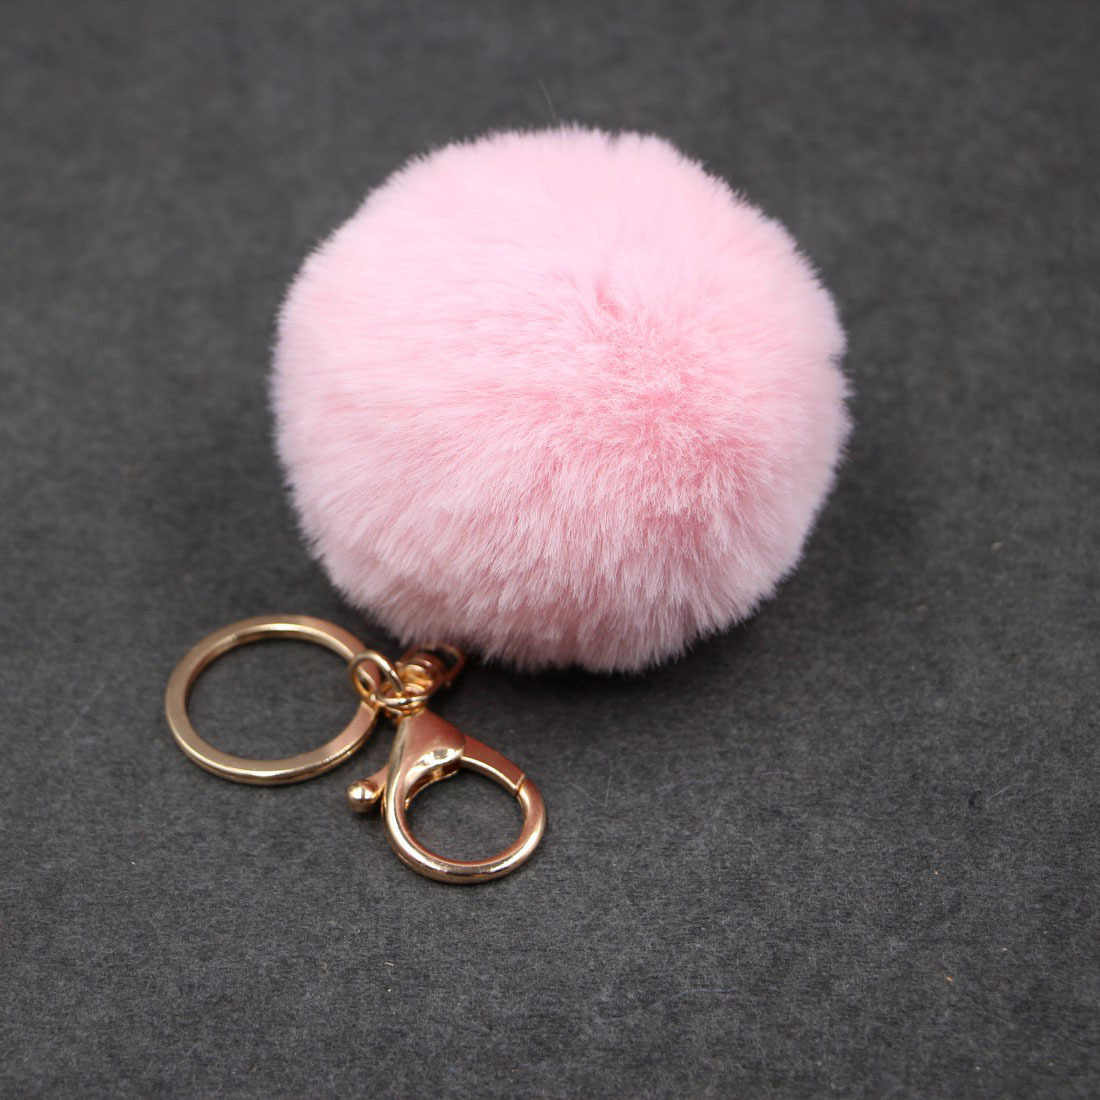 8CM 20 Colors Fluffy Rabbit Fur Ball Key Chain Cute Cream Black Pompom Artificial Rabbit Fur Keychain Women Car Bag Key Ring